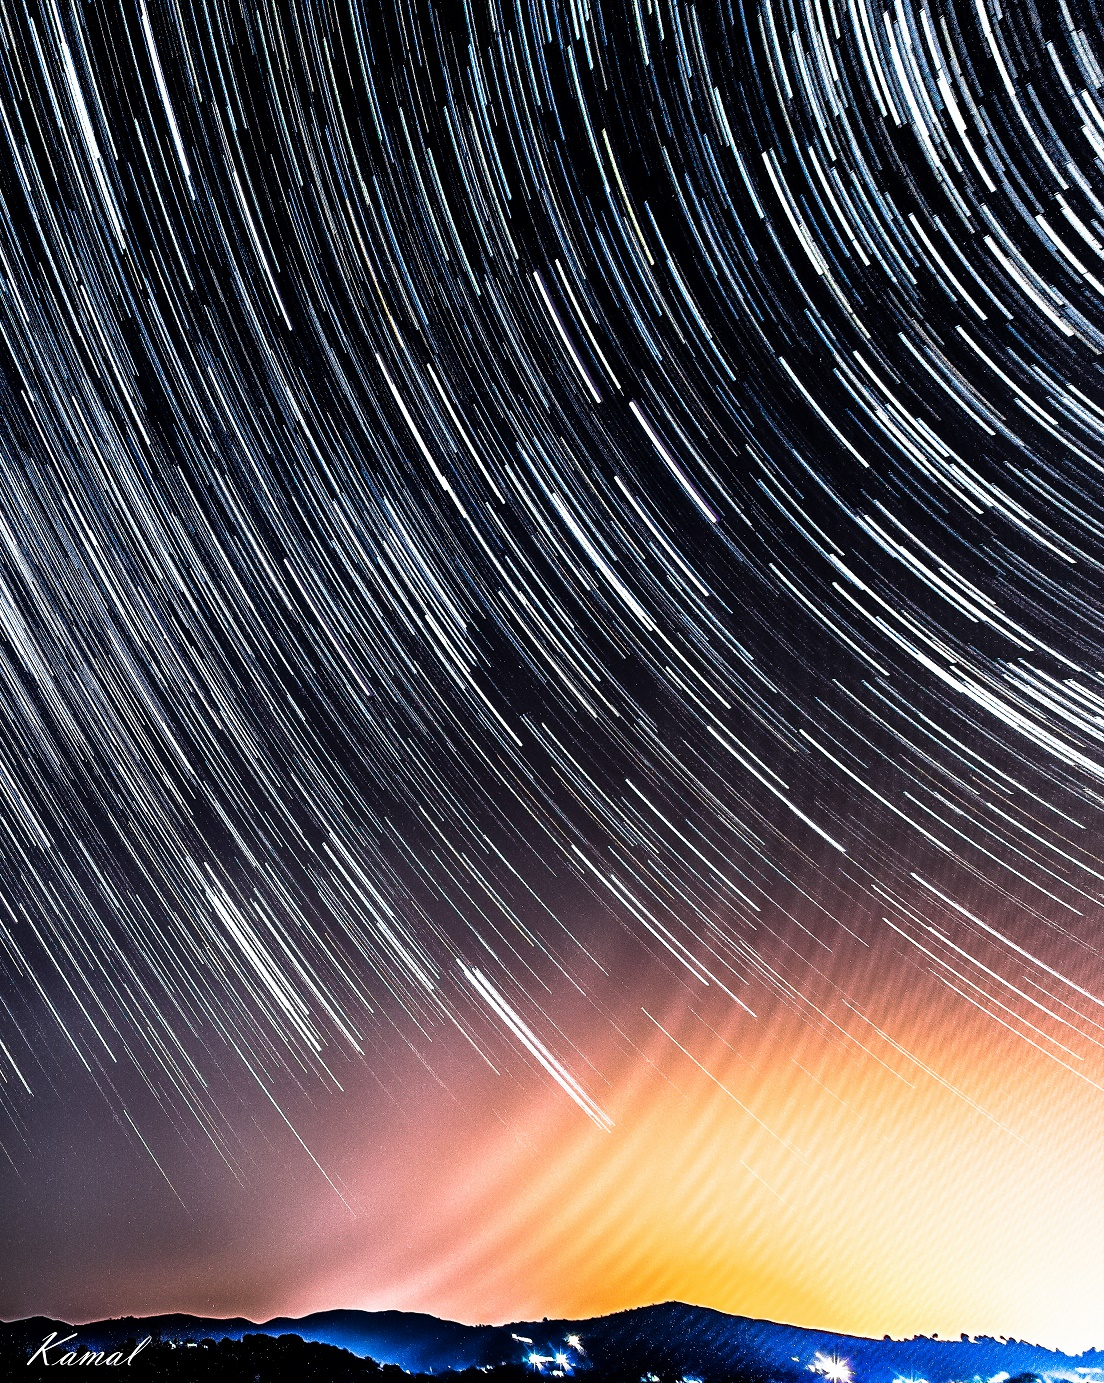 Photo by Ahmed Kamal showing star trails